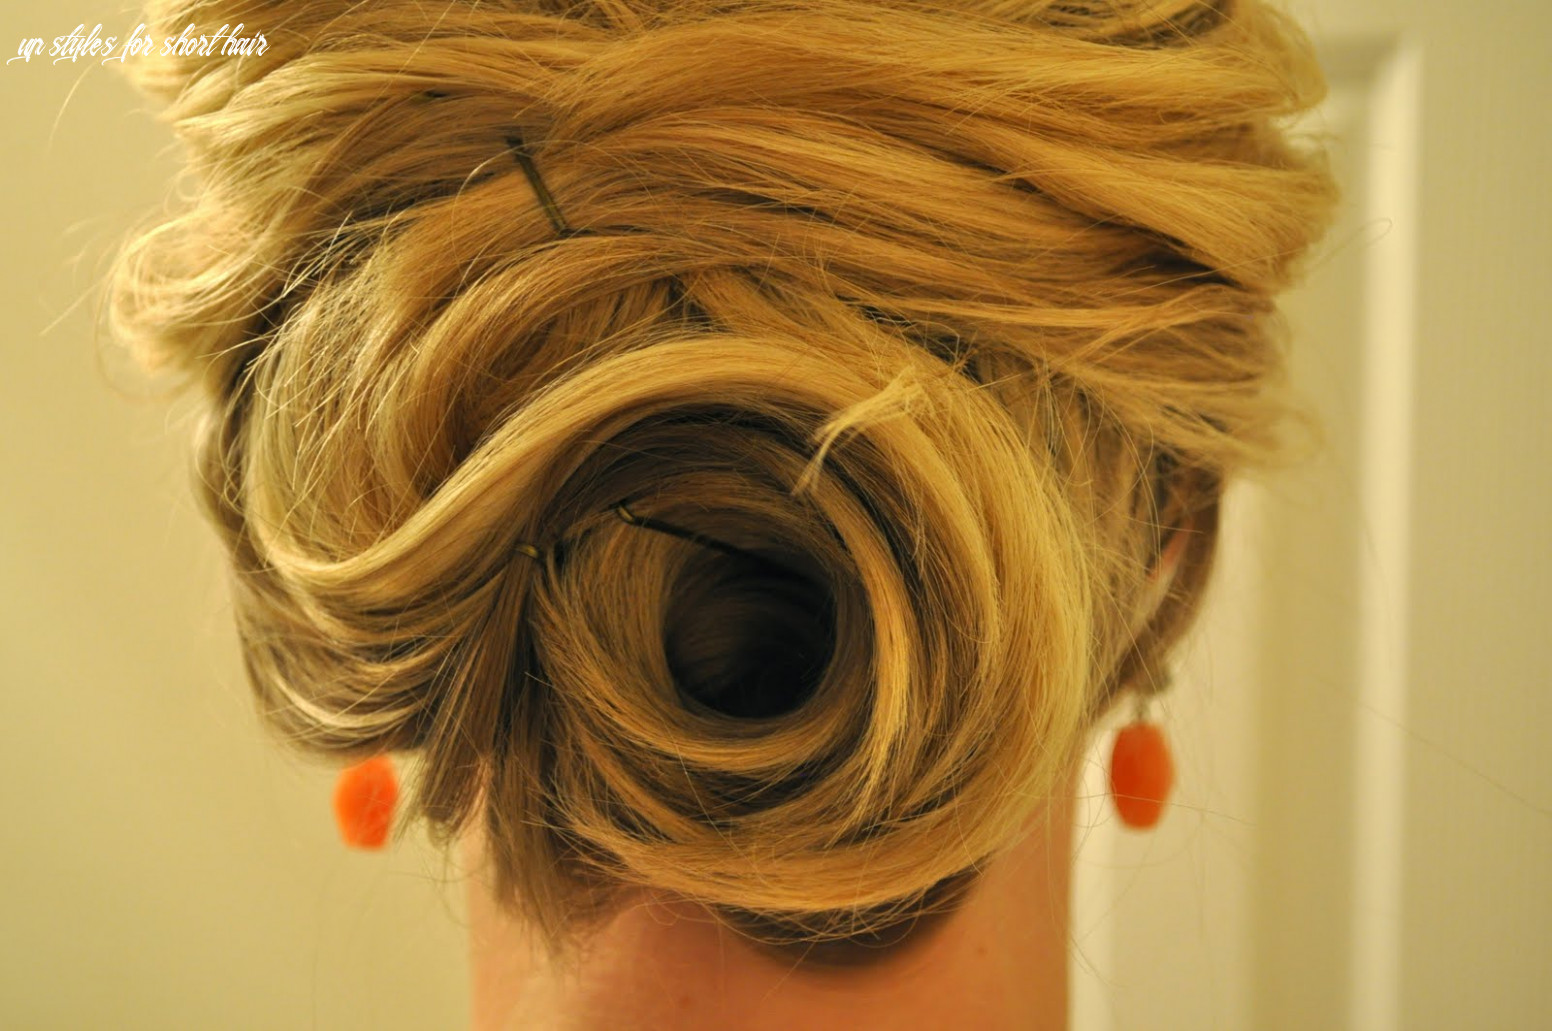 10 great updo styles for short hair styles weekly up styles for short hair